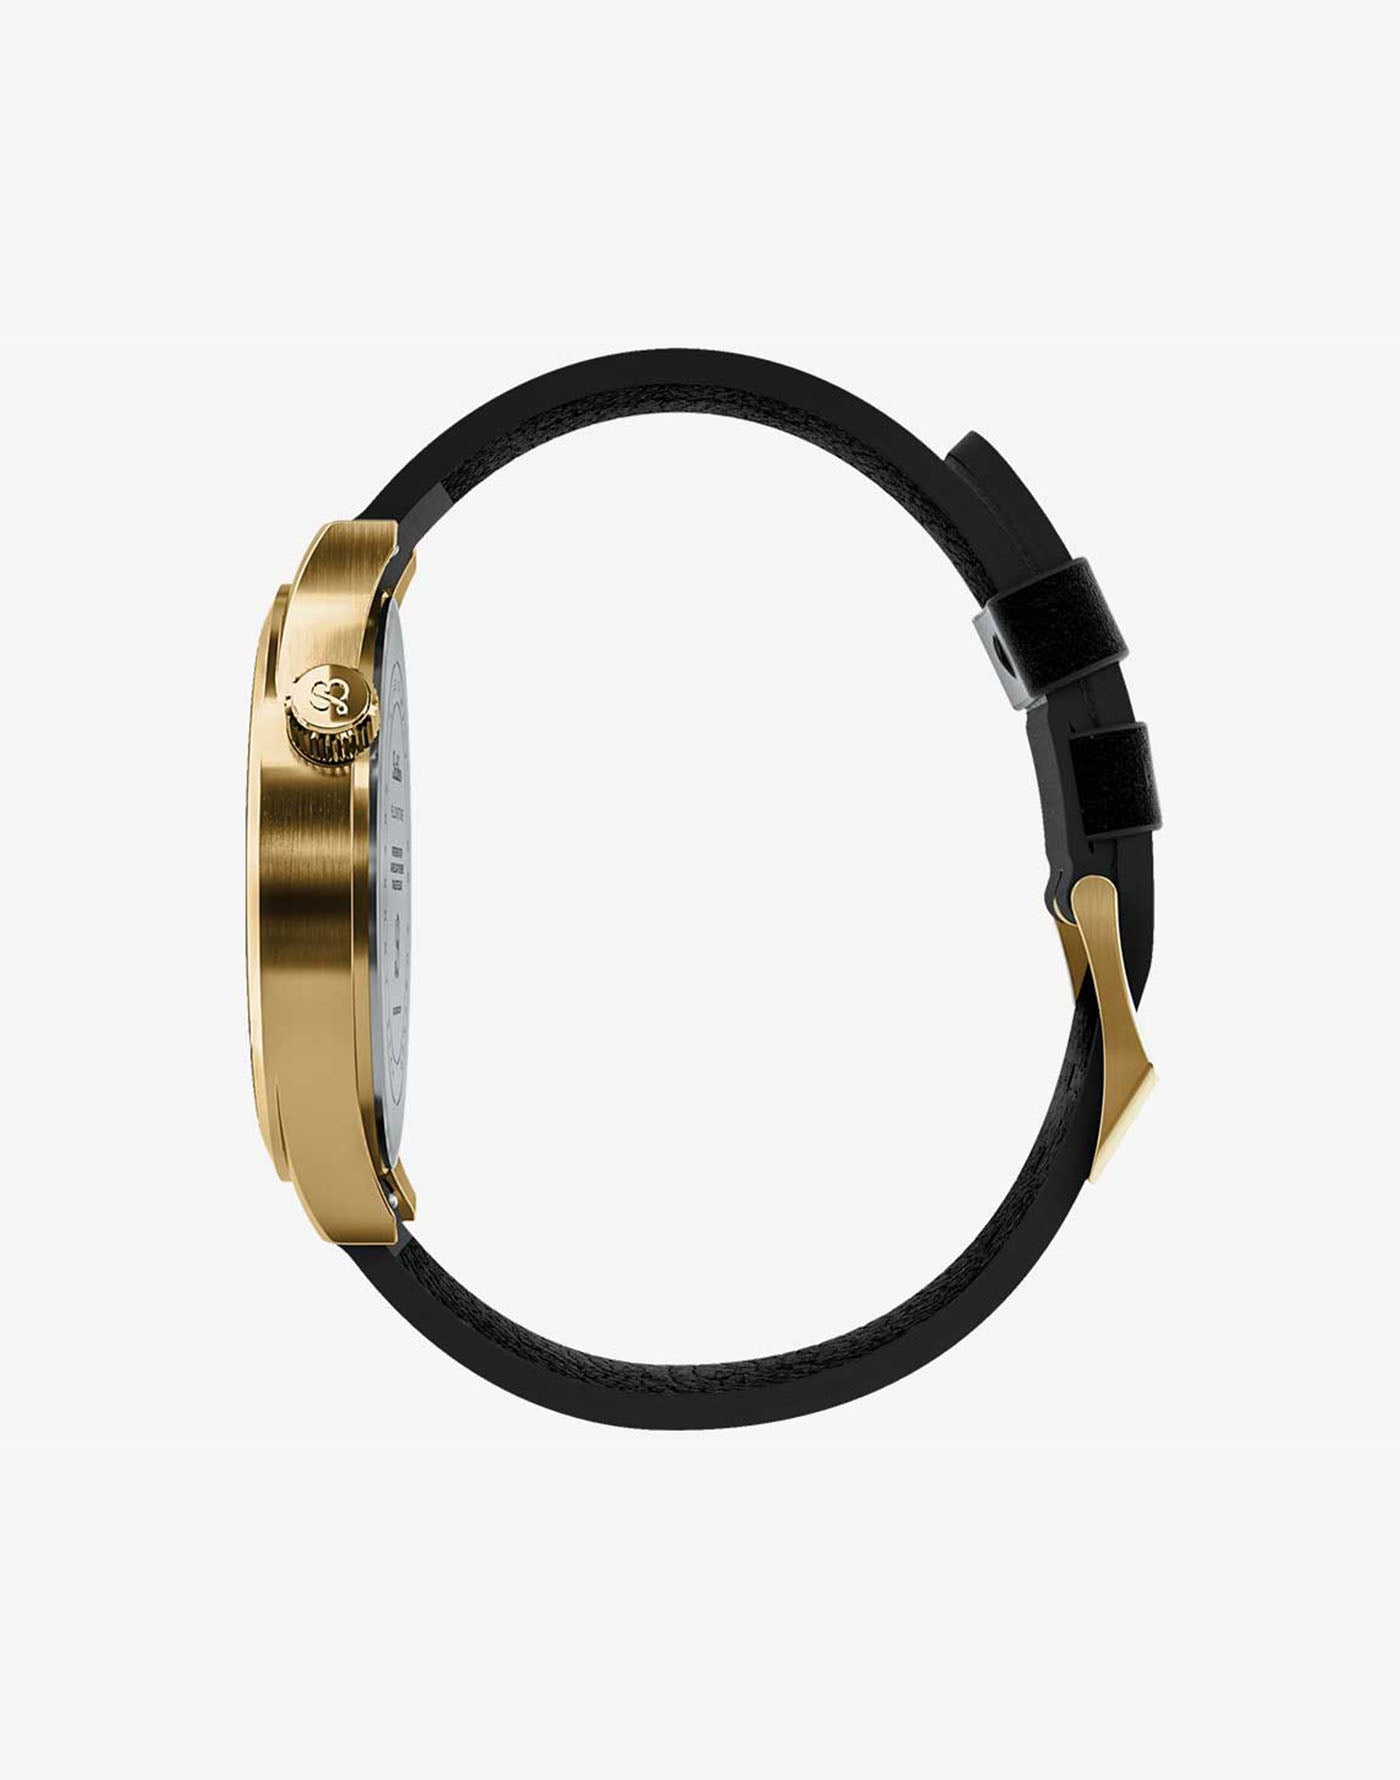 Ø 44mm · GOLDMINE